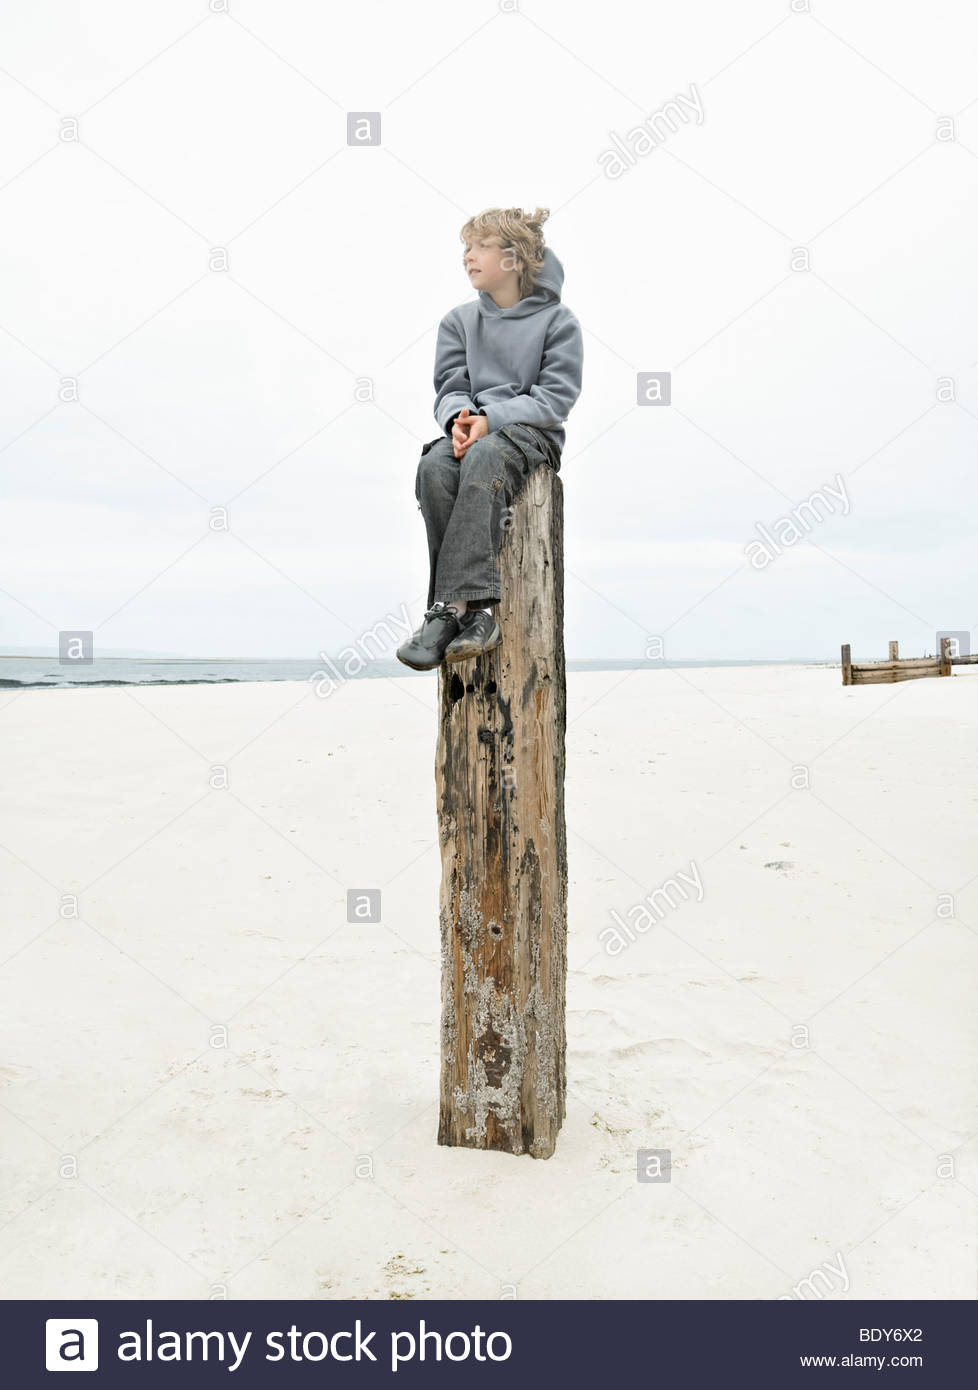 Boy sitting on top of post - Stock Image